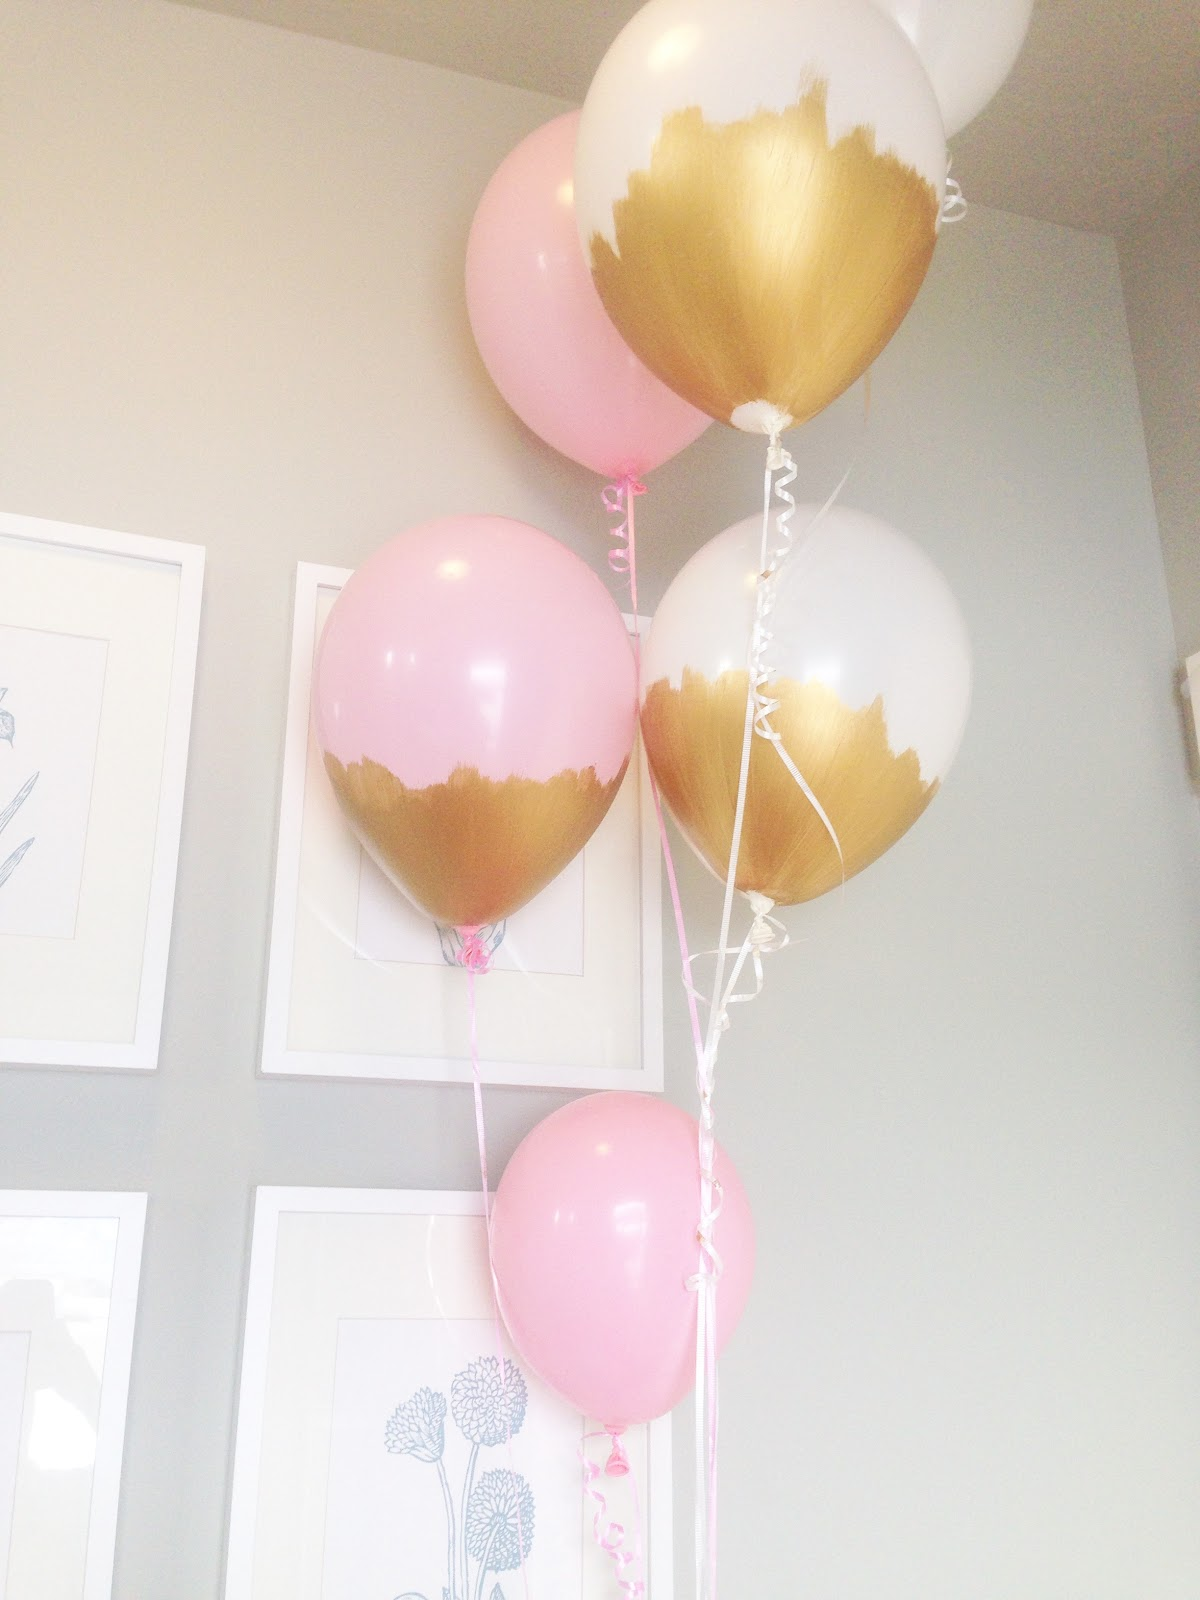 5 Unique Balloon Trends Harlow Amp Thistle Home Design Lifestyle DIY